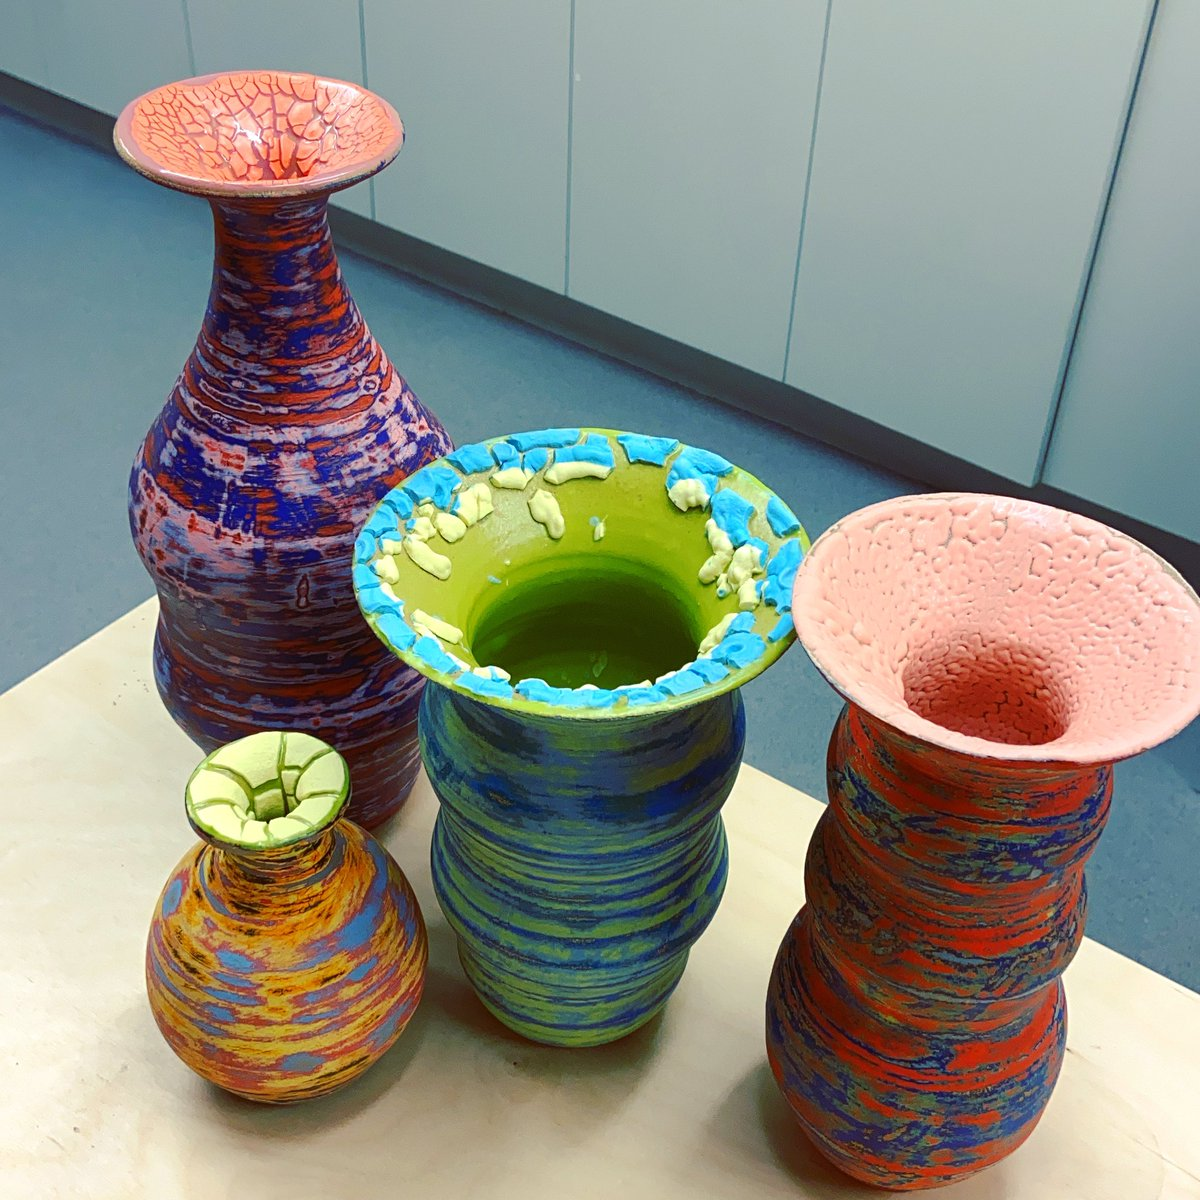 More vases with textures.